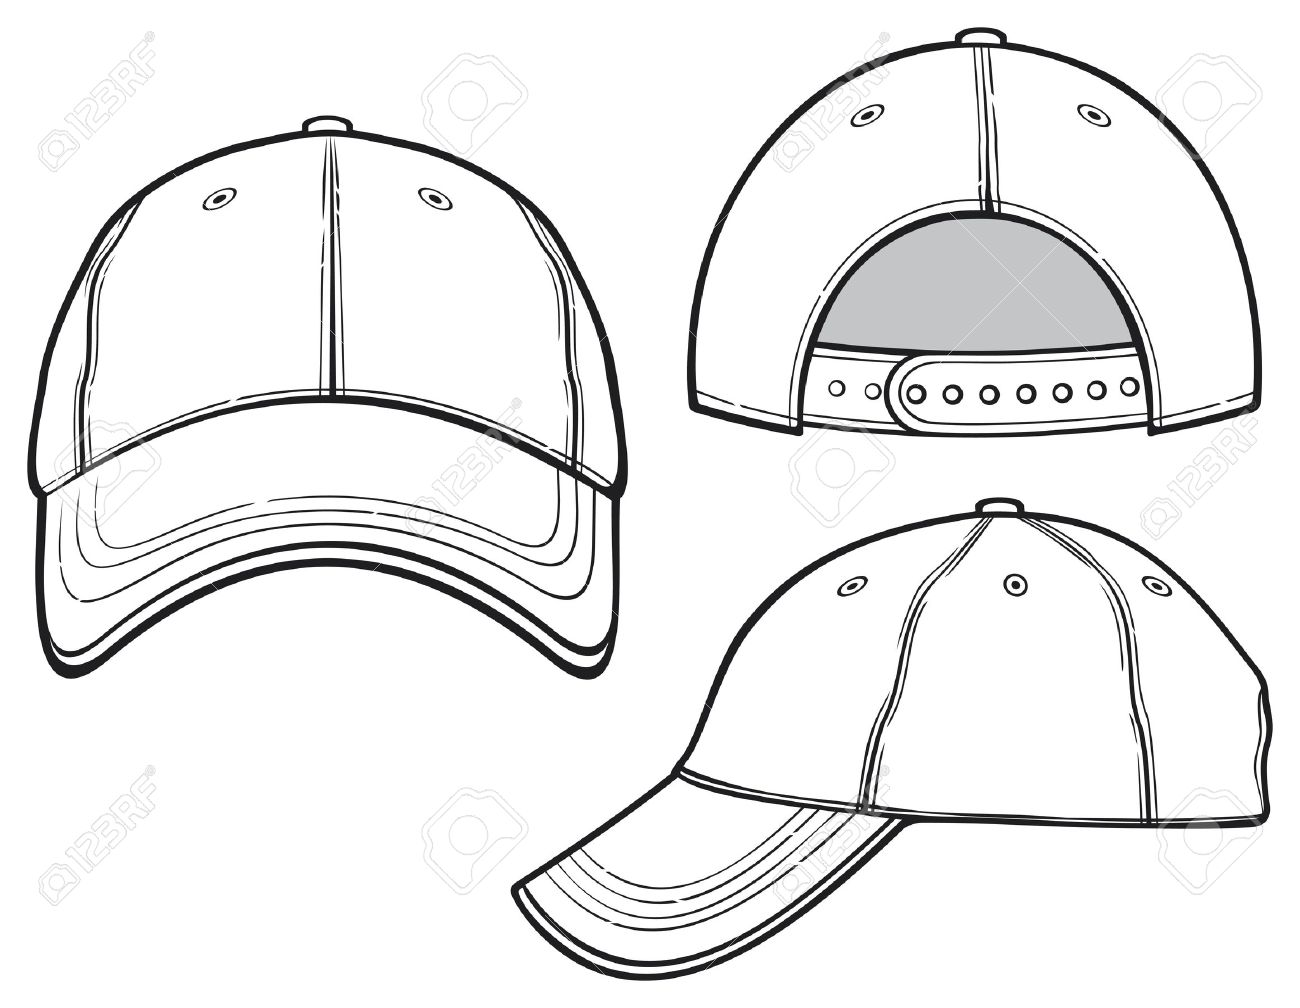 Baseball Cap Royalty Free Cliparts, Vectors, And Stock